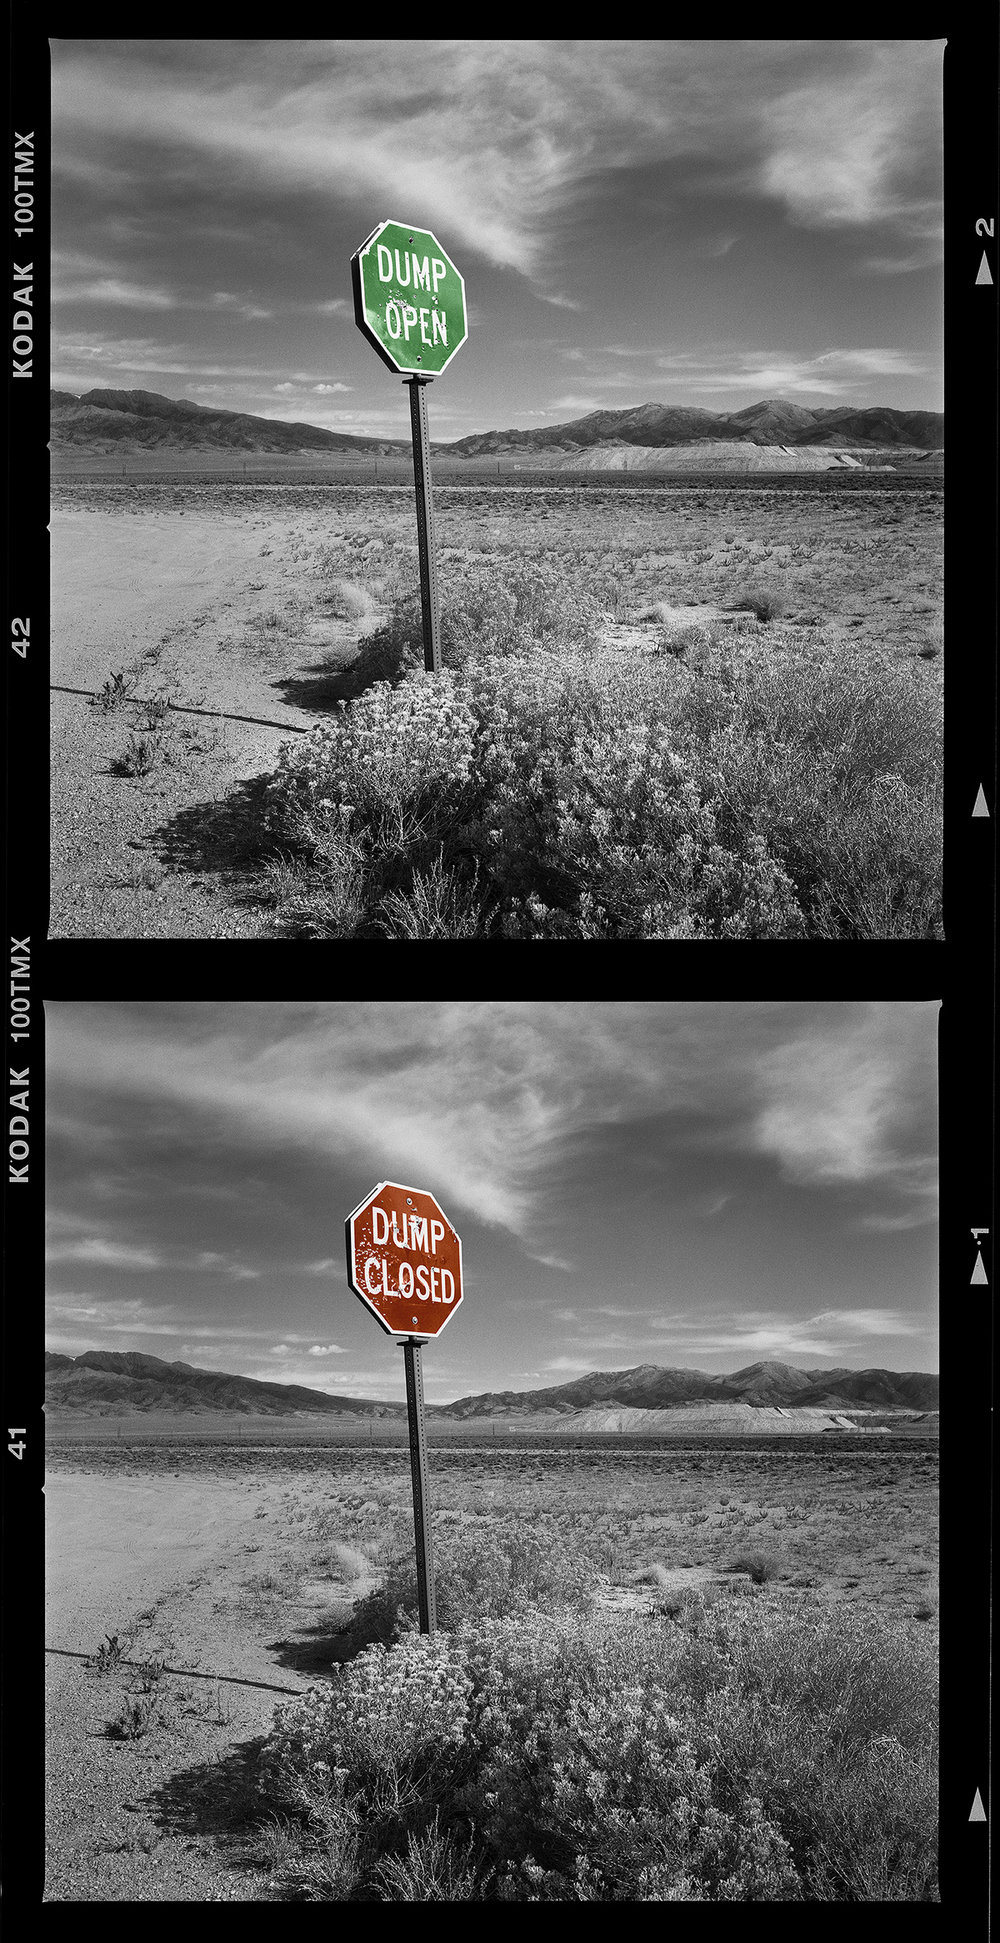 Dump Open, Dump Closed, Utah, 2008,2015